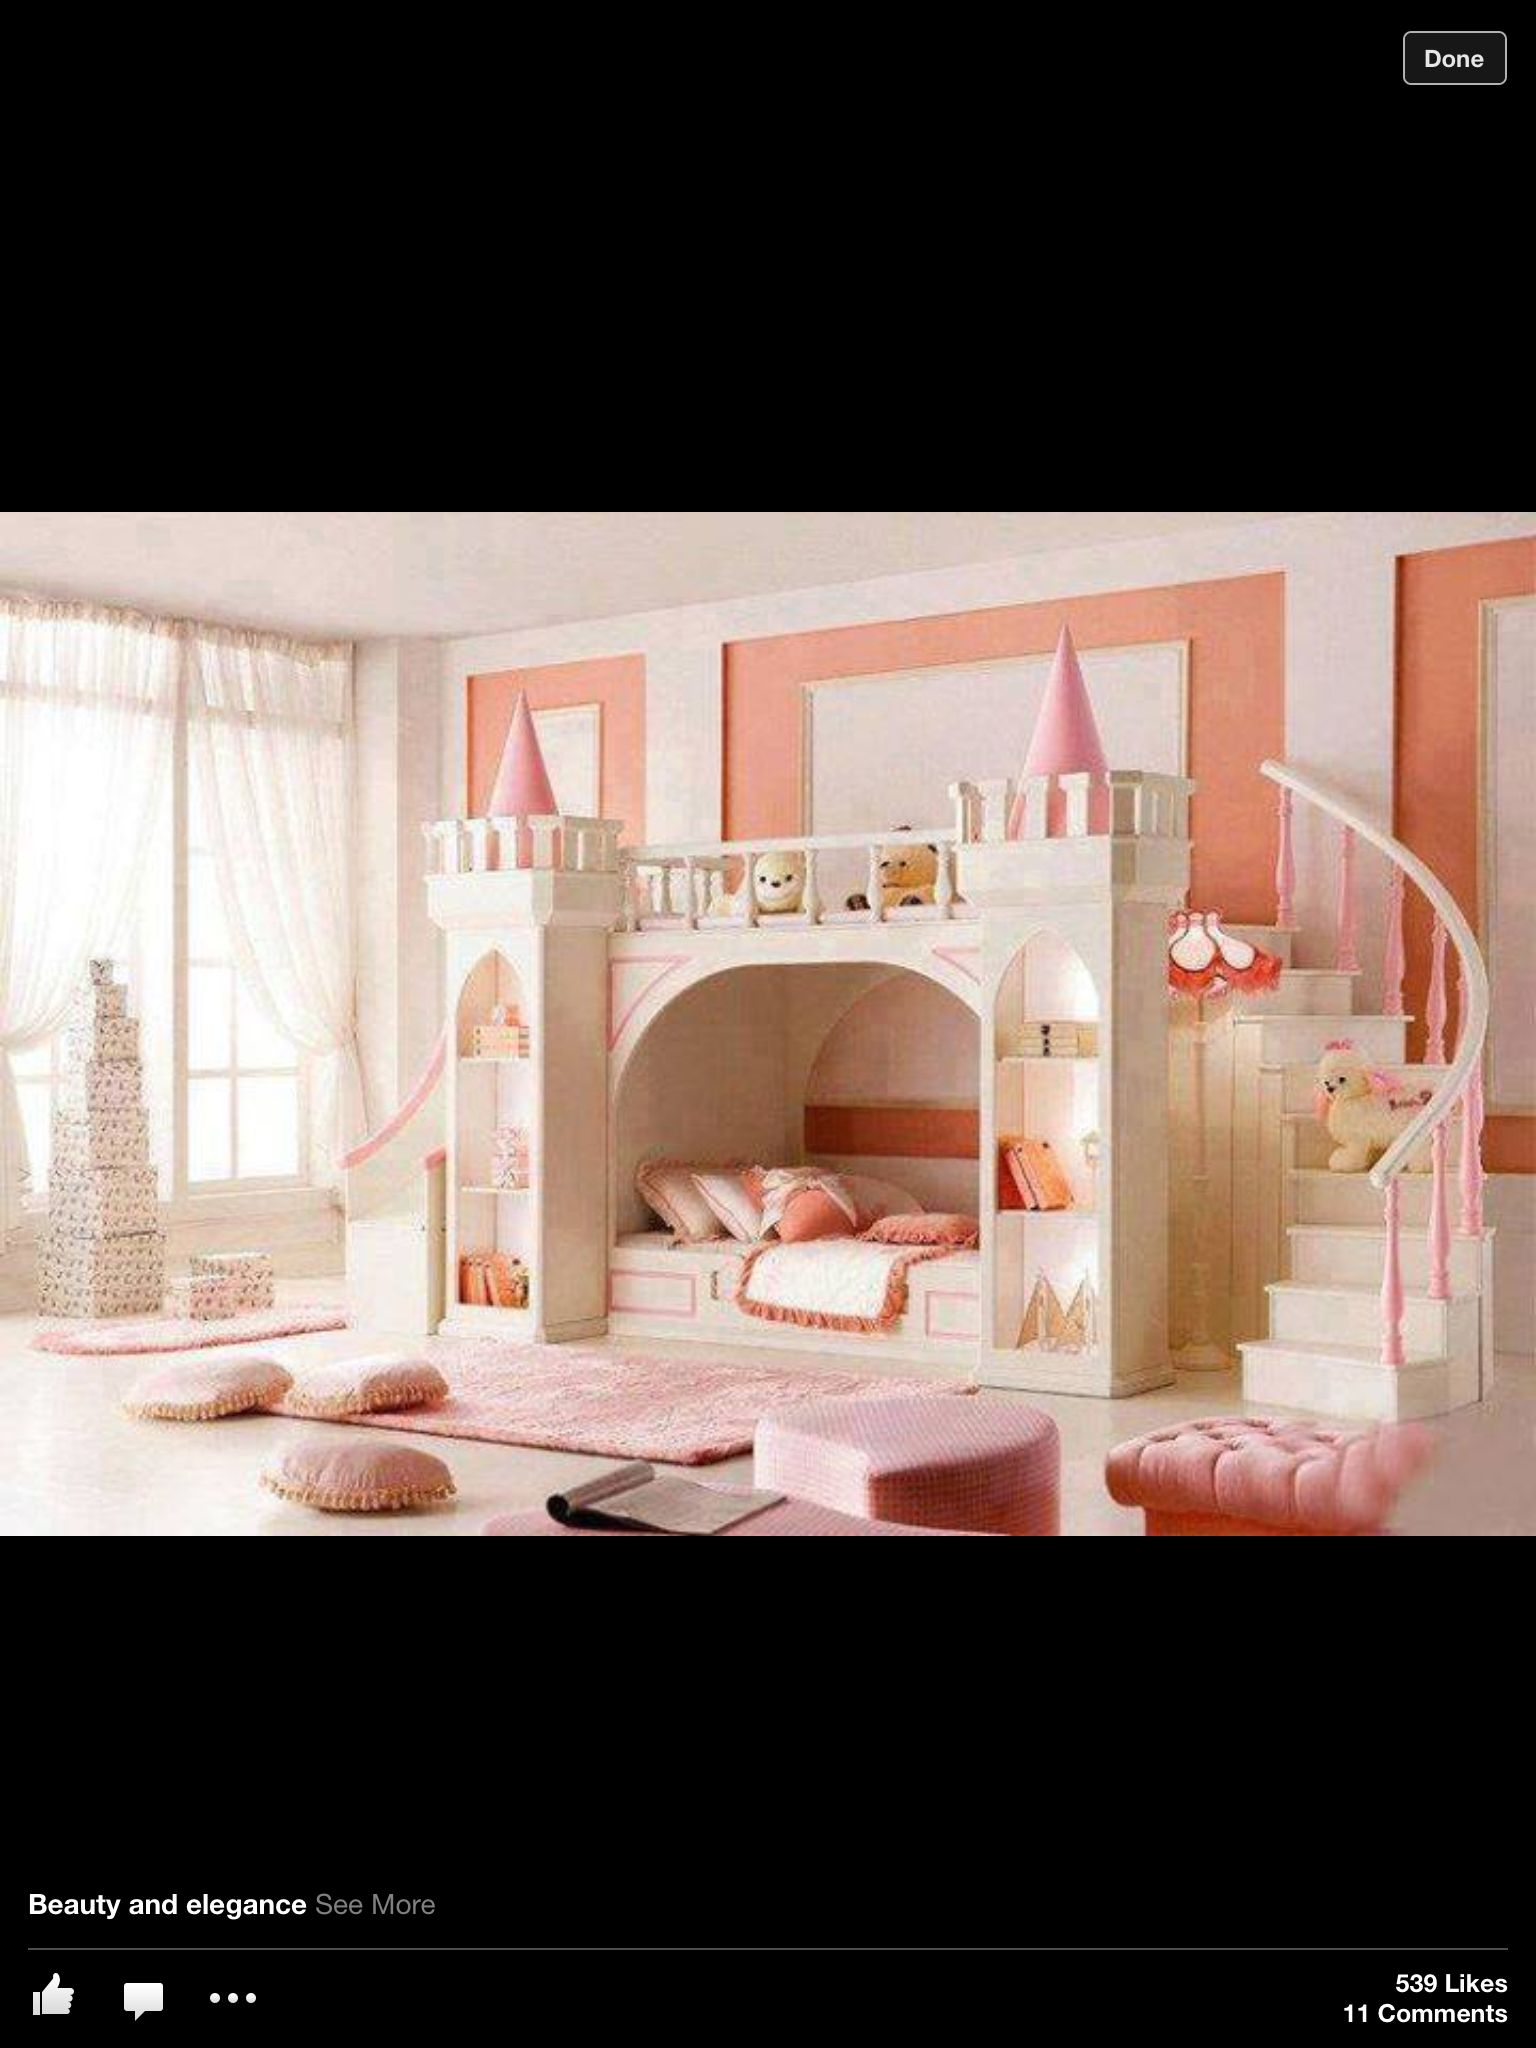 It would be so cool to wake up in a castle! Aka... That awesome room ...